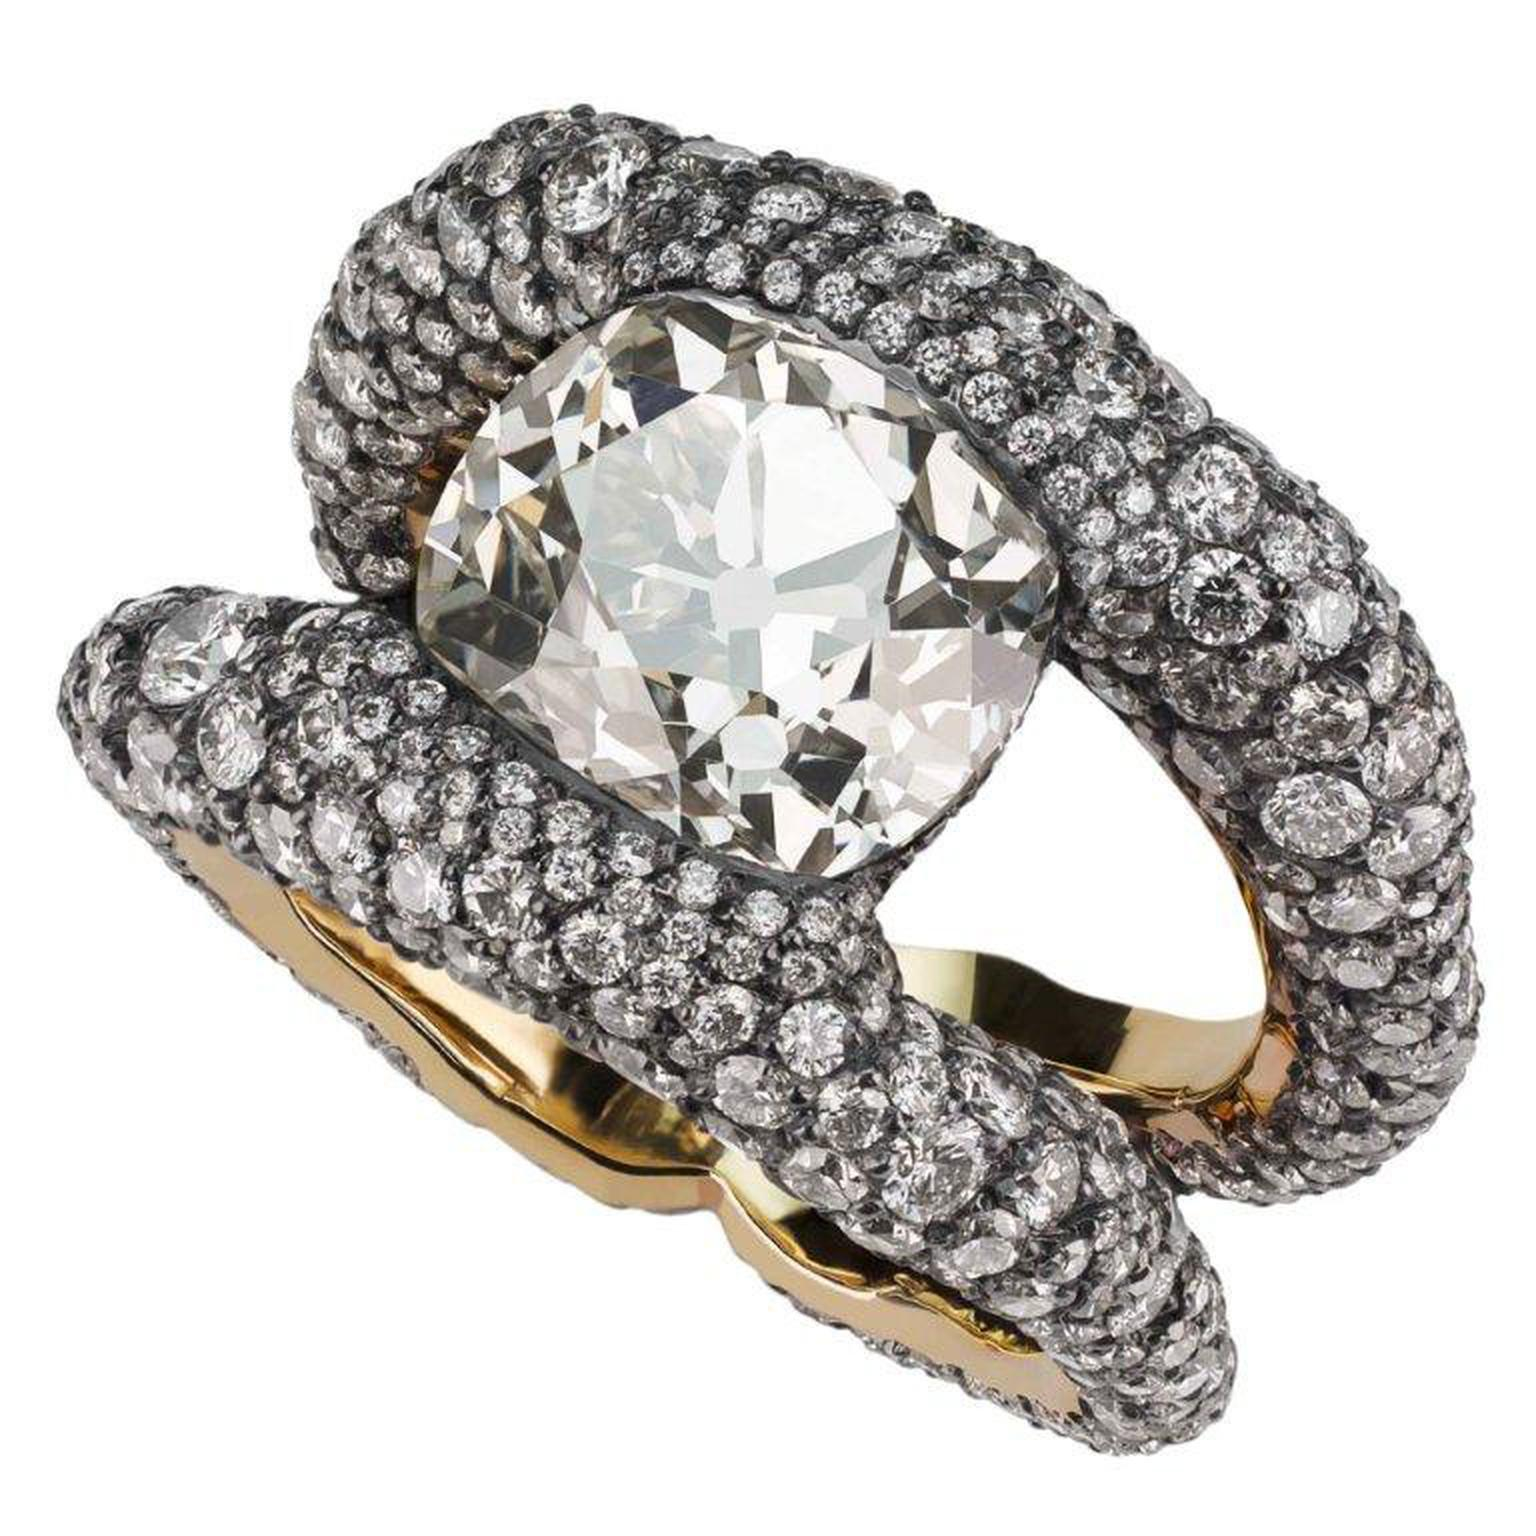 Faberge-Charmeuse-Blanche-Ring.jpg